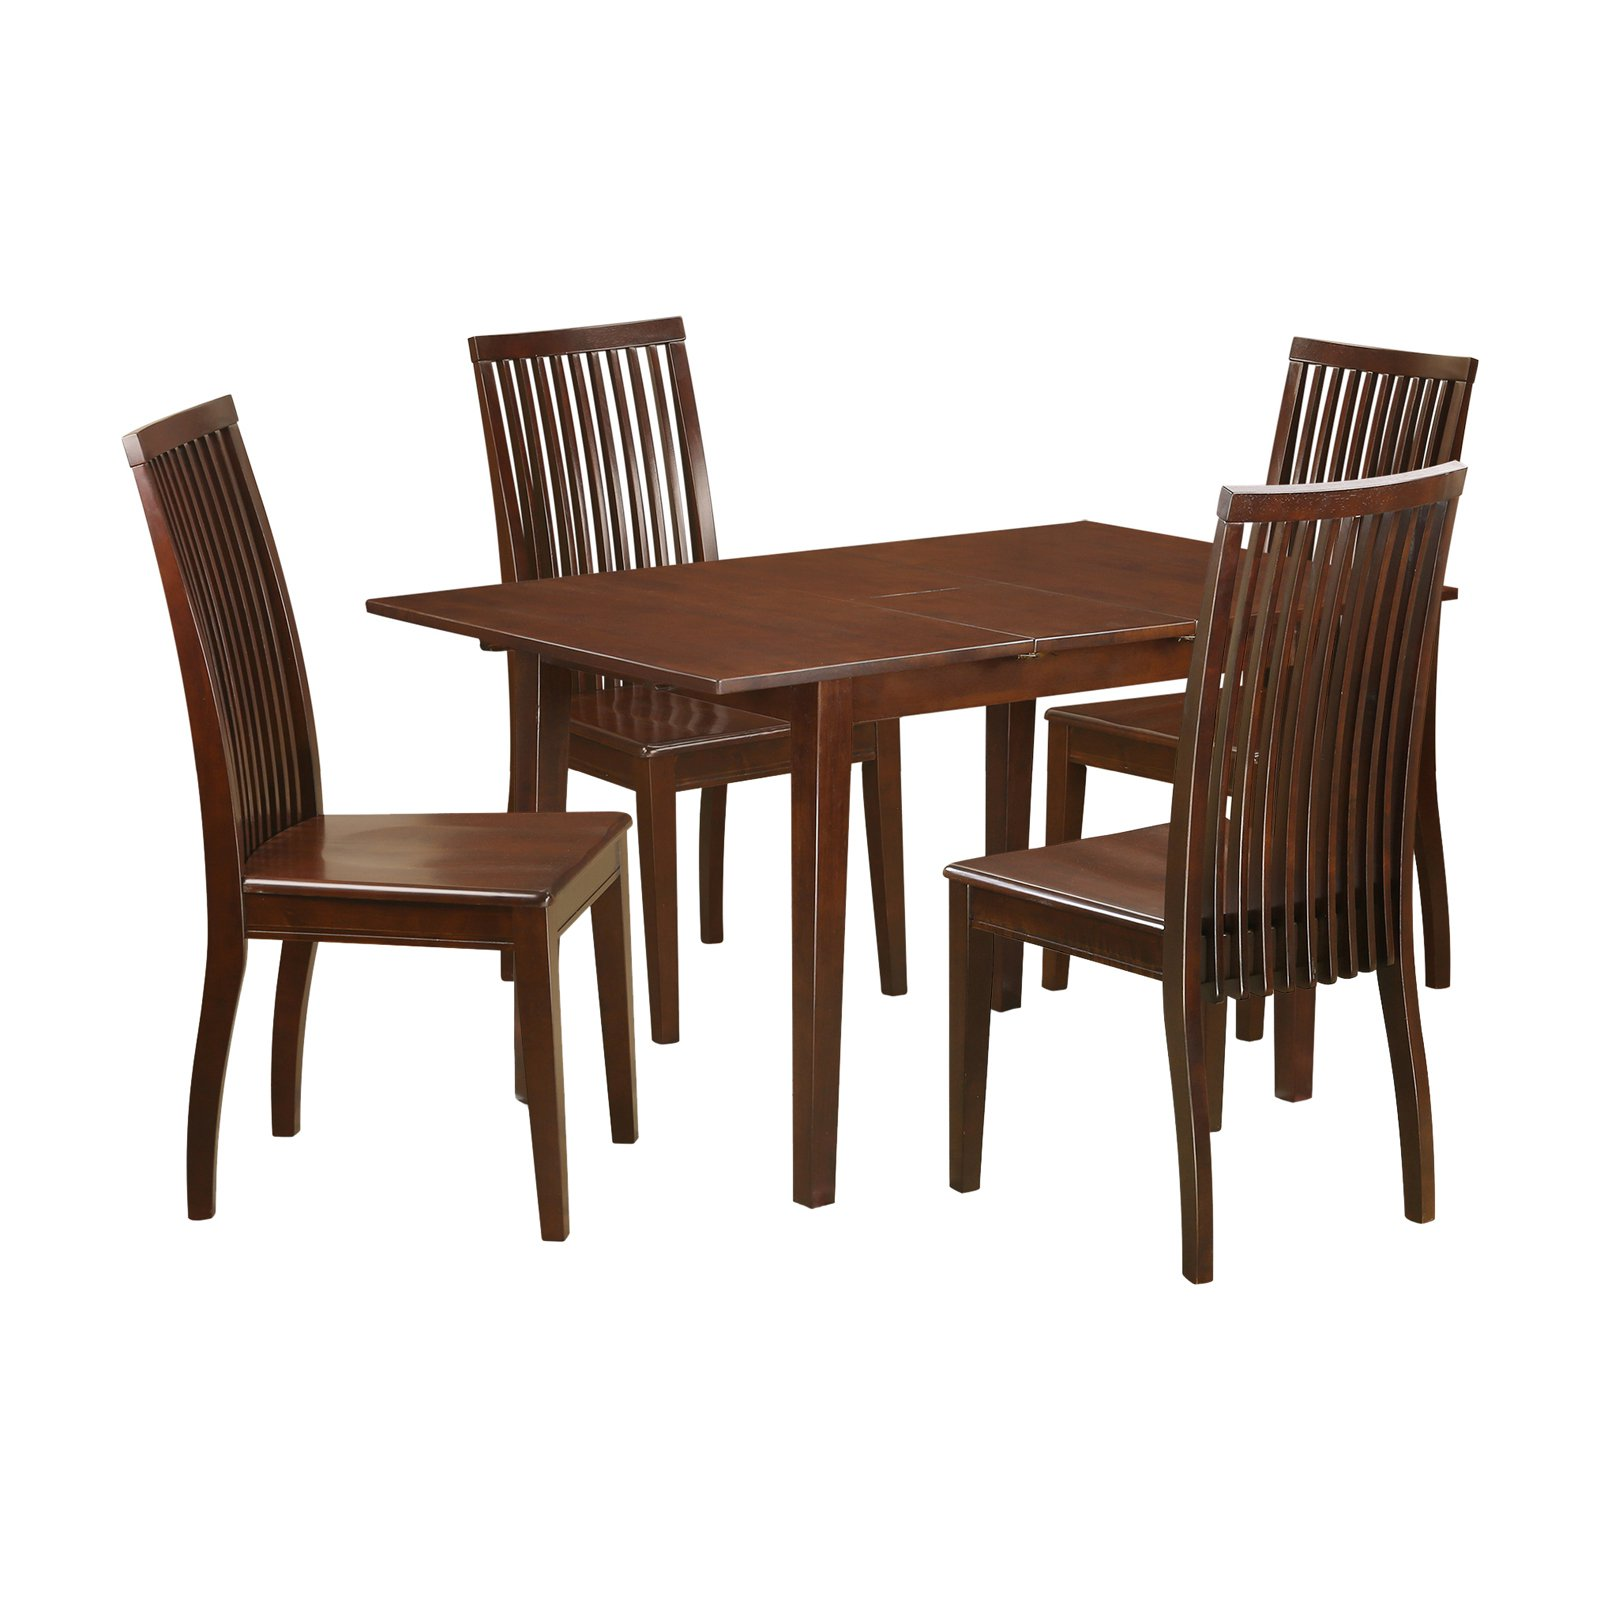 East West Furniture 5 Piece Picasso Rectangular Extending Dining Table Set - Mahogany